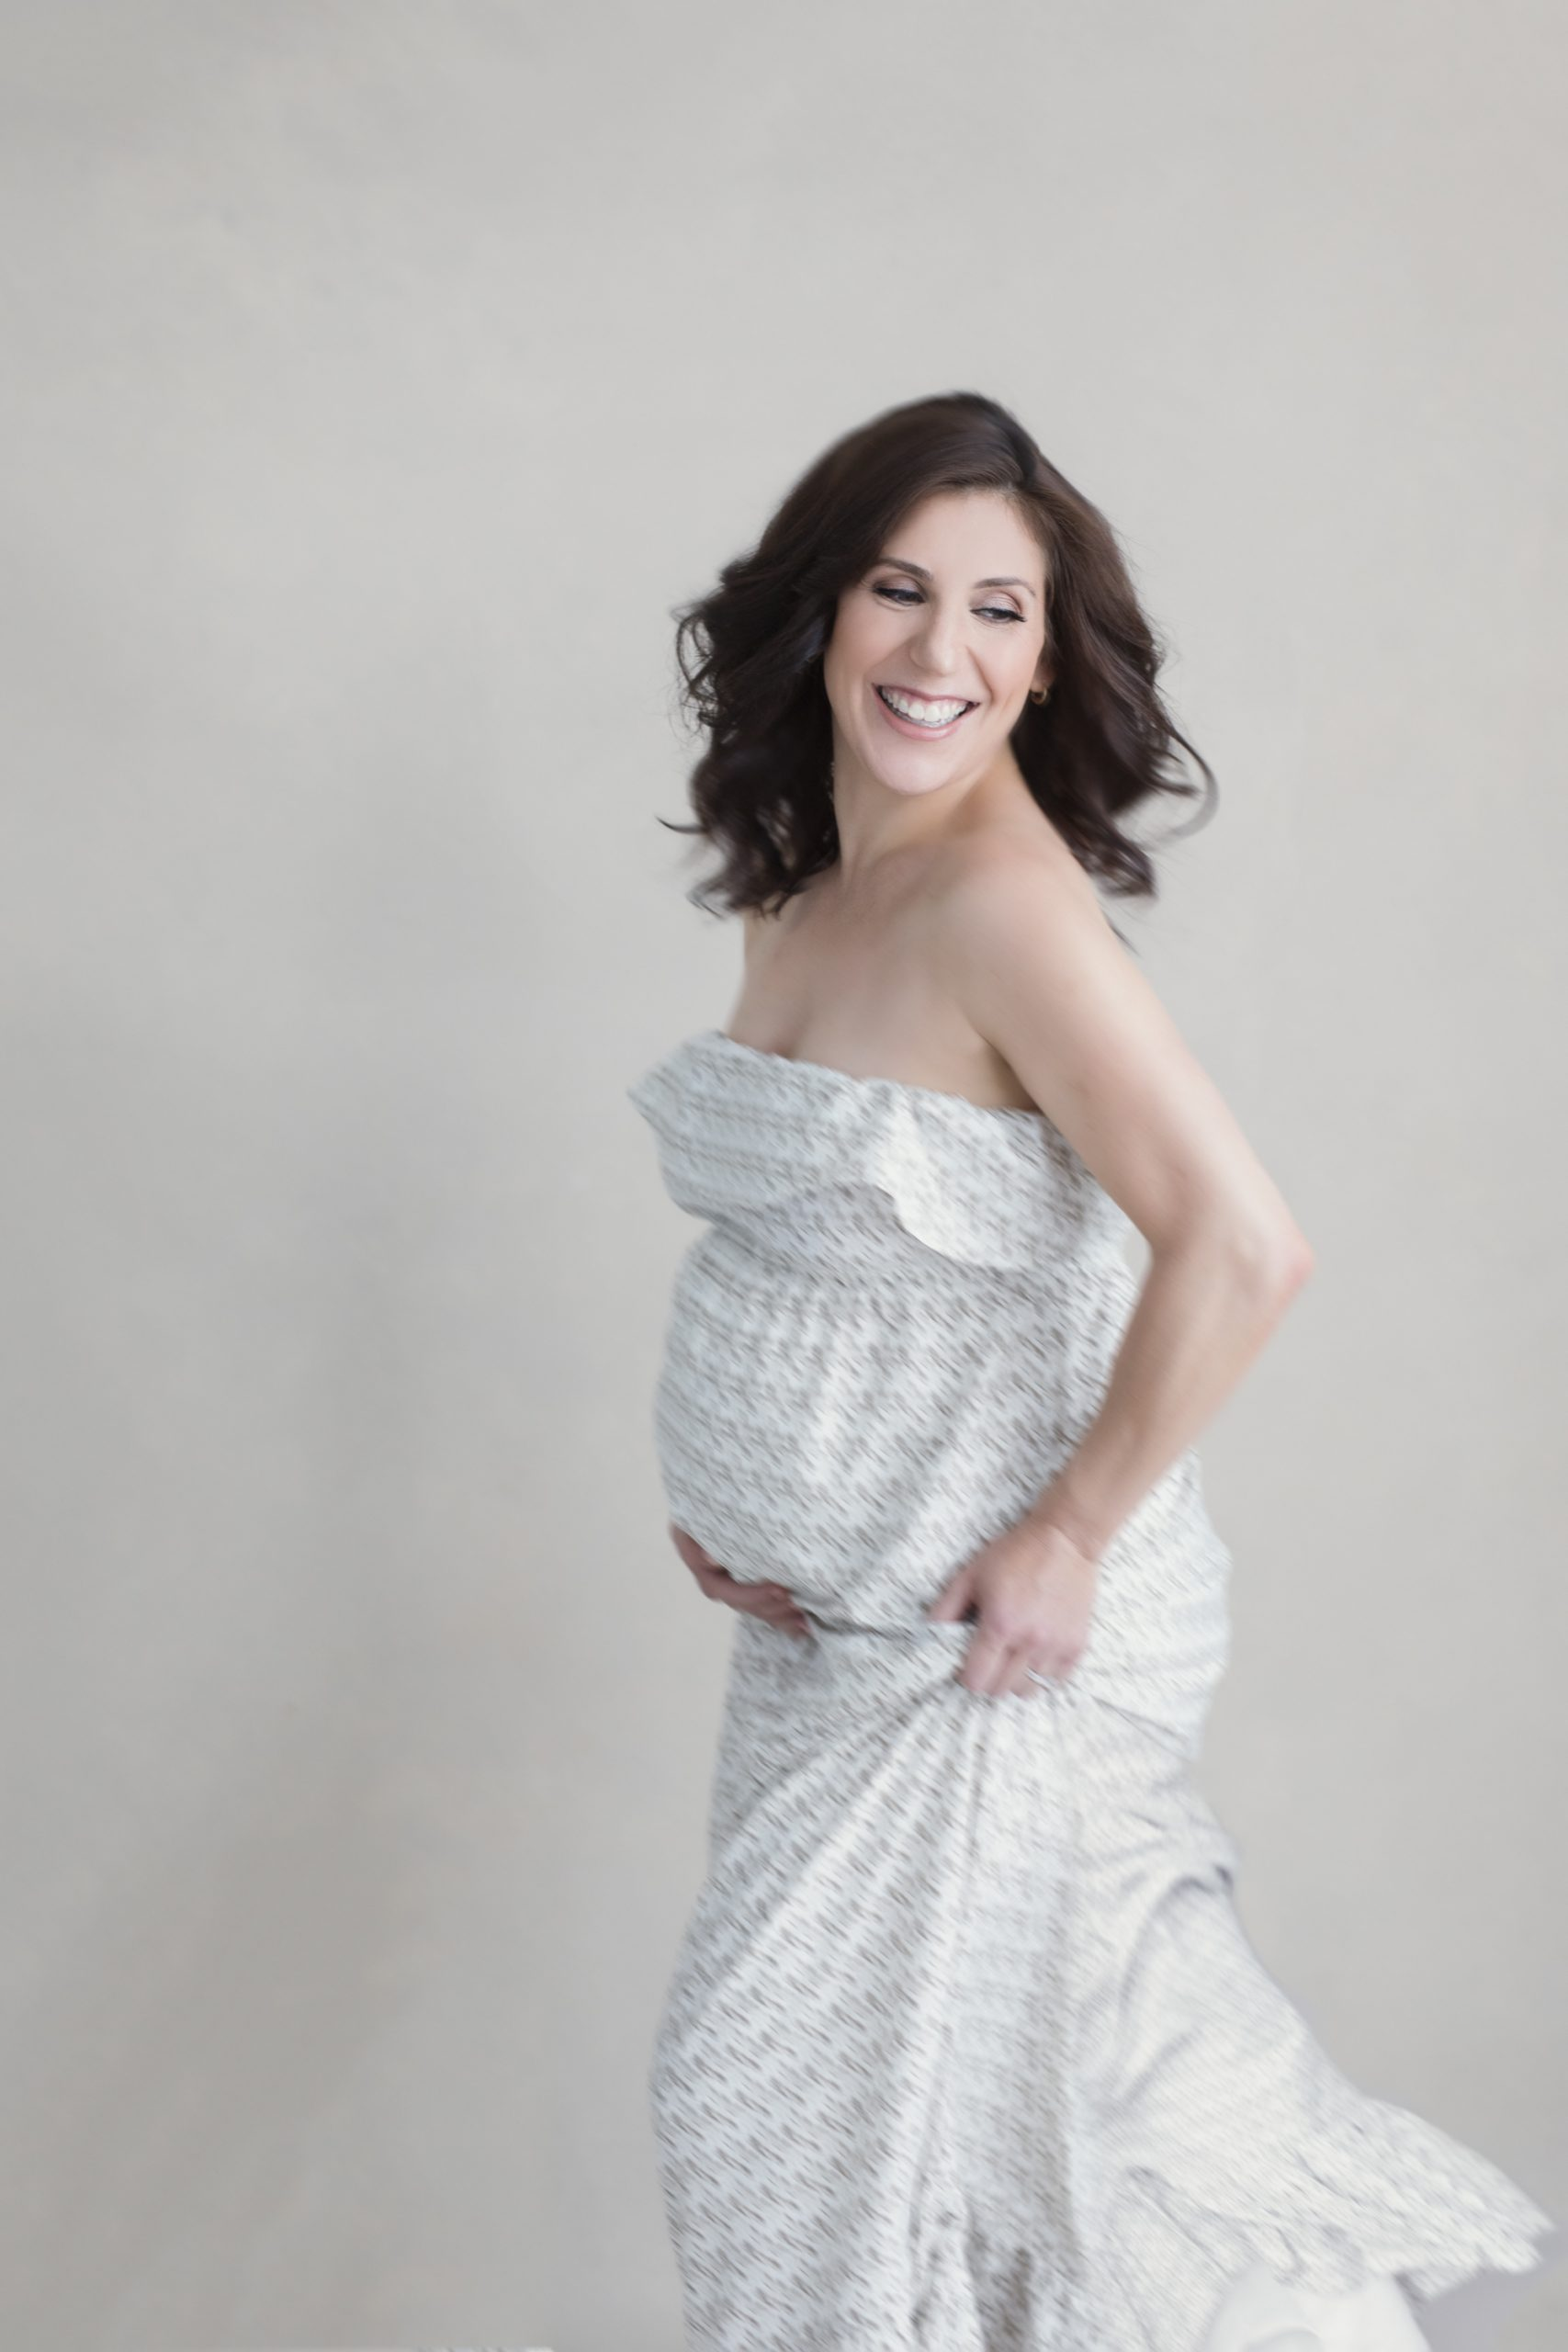 Pregnant woman with brown hair dancing and smiling.